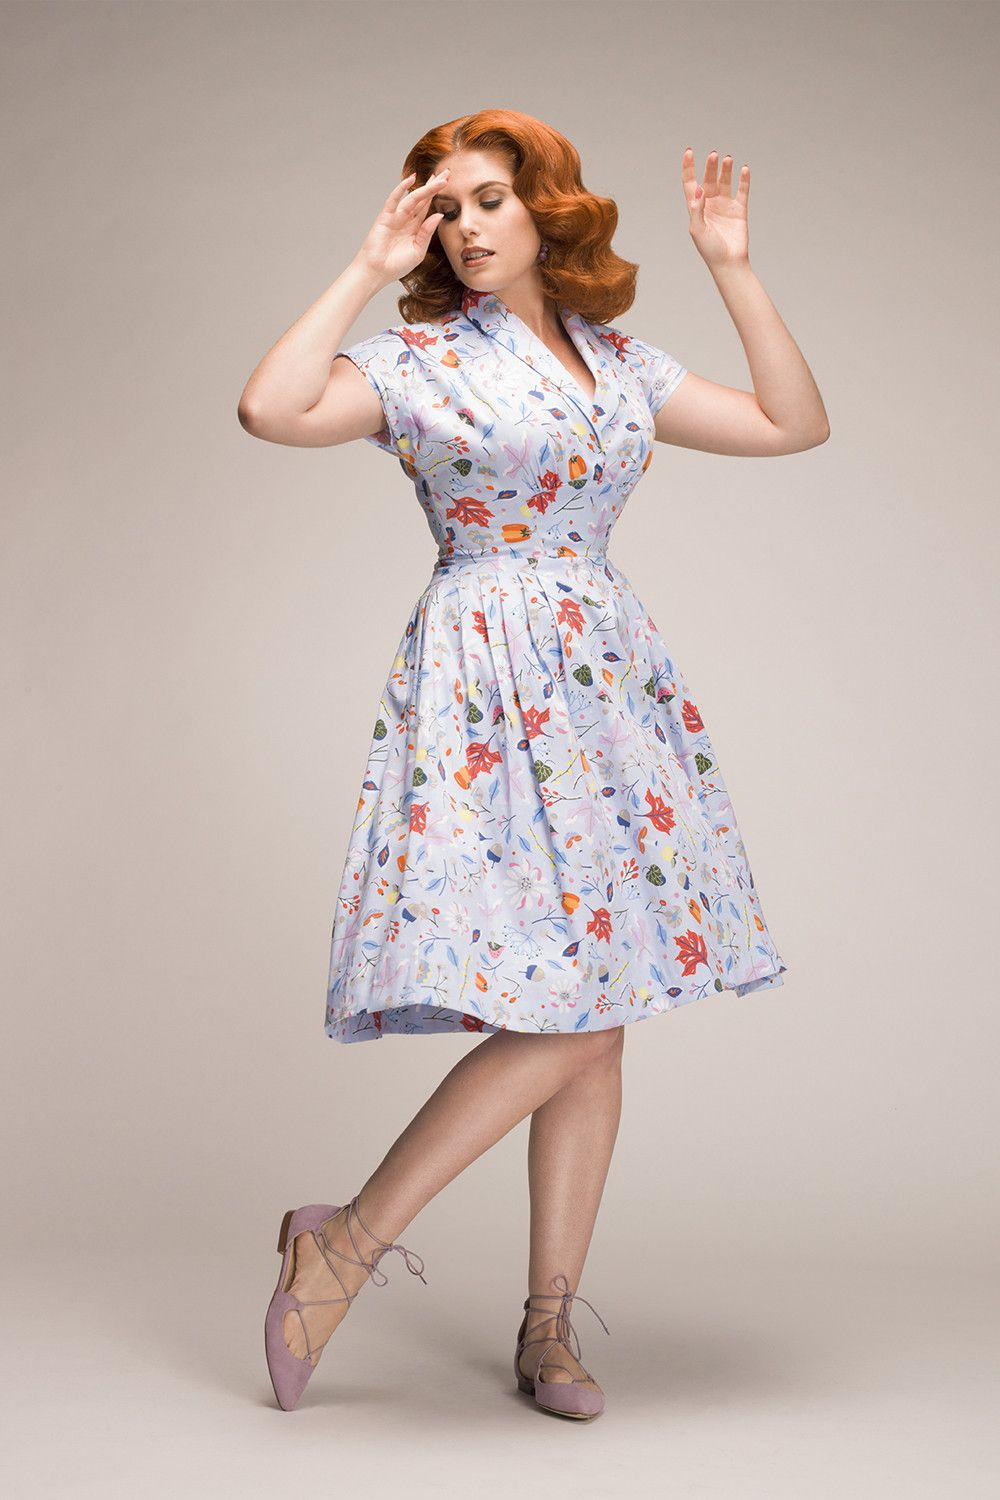 aed3c2c235b Nadia Dress in Ice Blue First Frost Print by DAPPER DAY - New ...